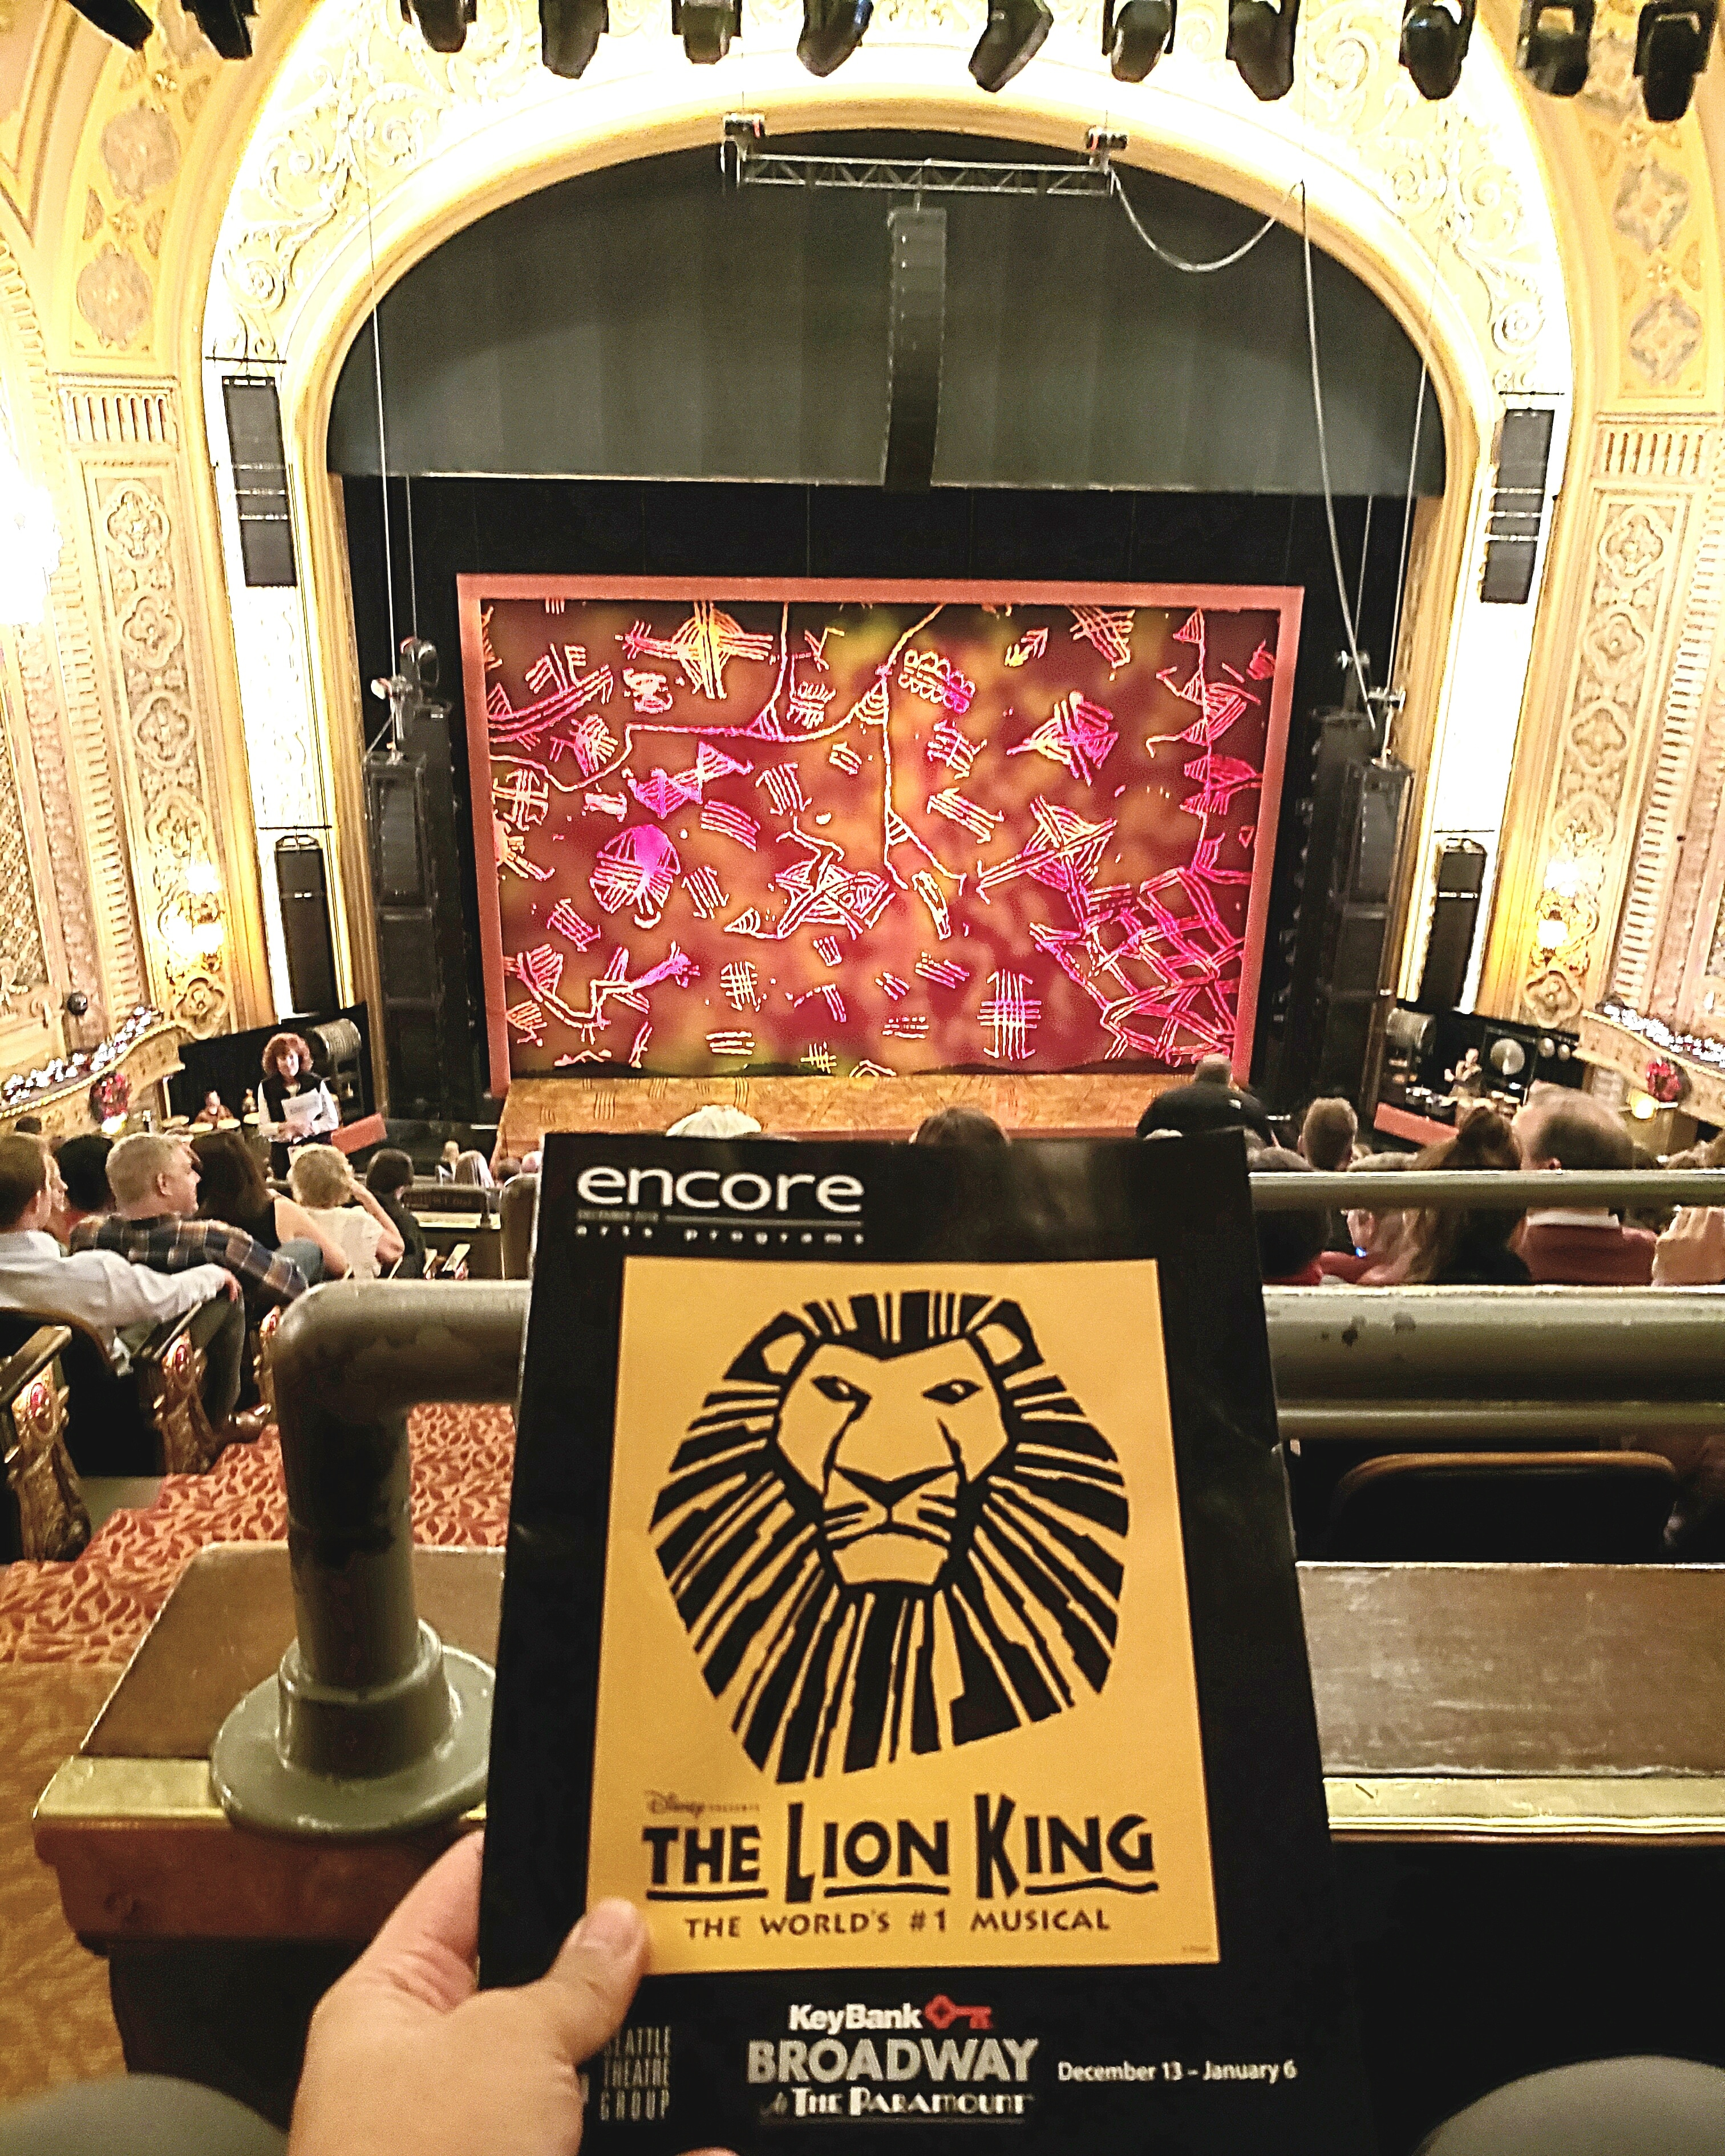 Disney's The Lion King - Musical #soldout run at Paramount Theatre. Costumes, set, & music were #AMAZING but show didn't live up to the #hype. #Puppetry isn't a great stage medium & animals aren't good stage characters. Also too #kidfriendly. #circleoflife #hakunamatata